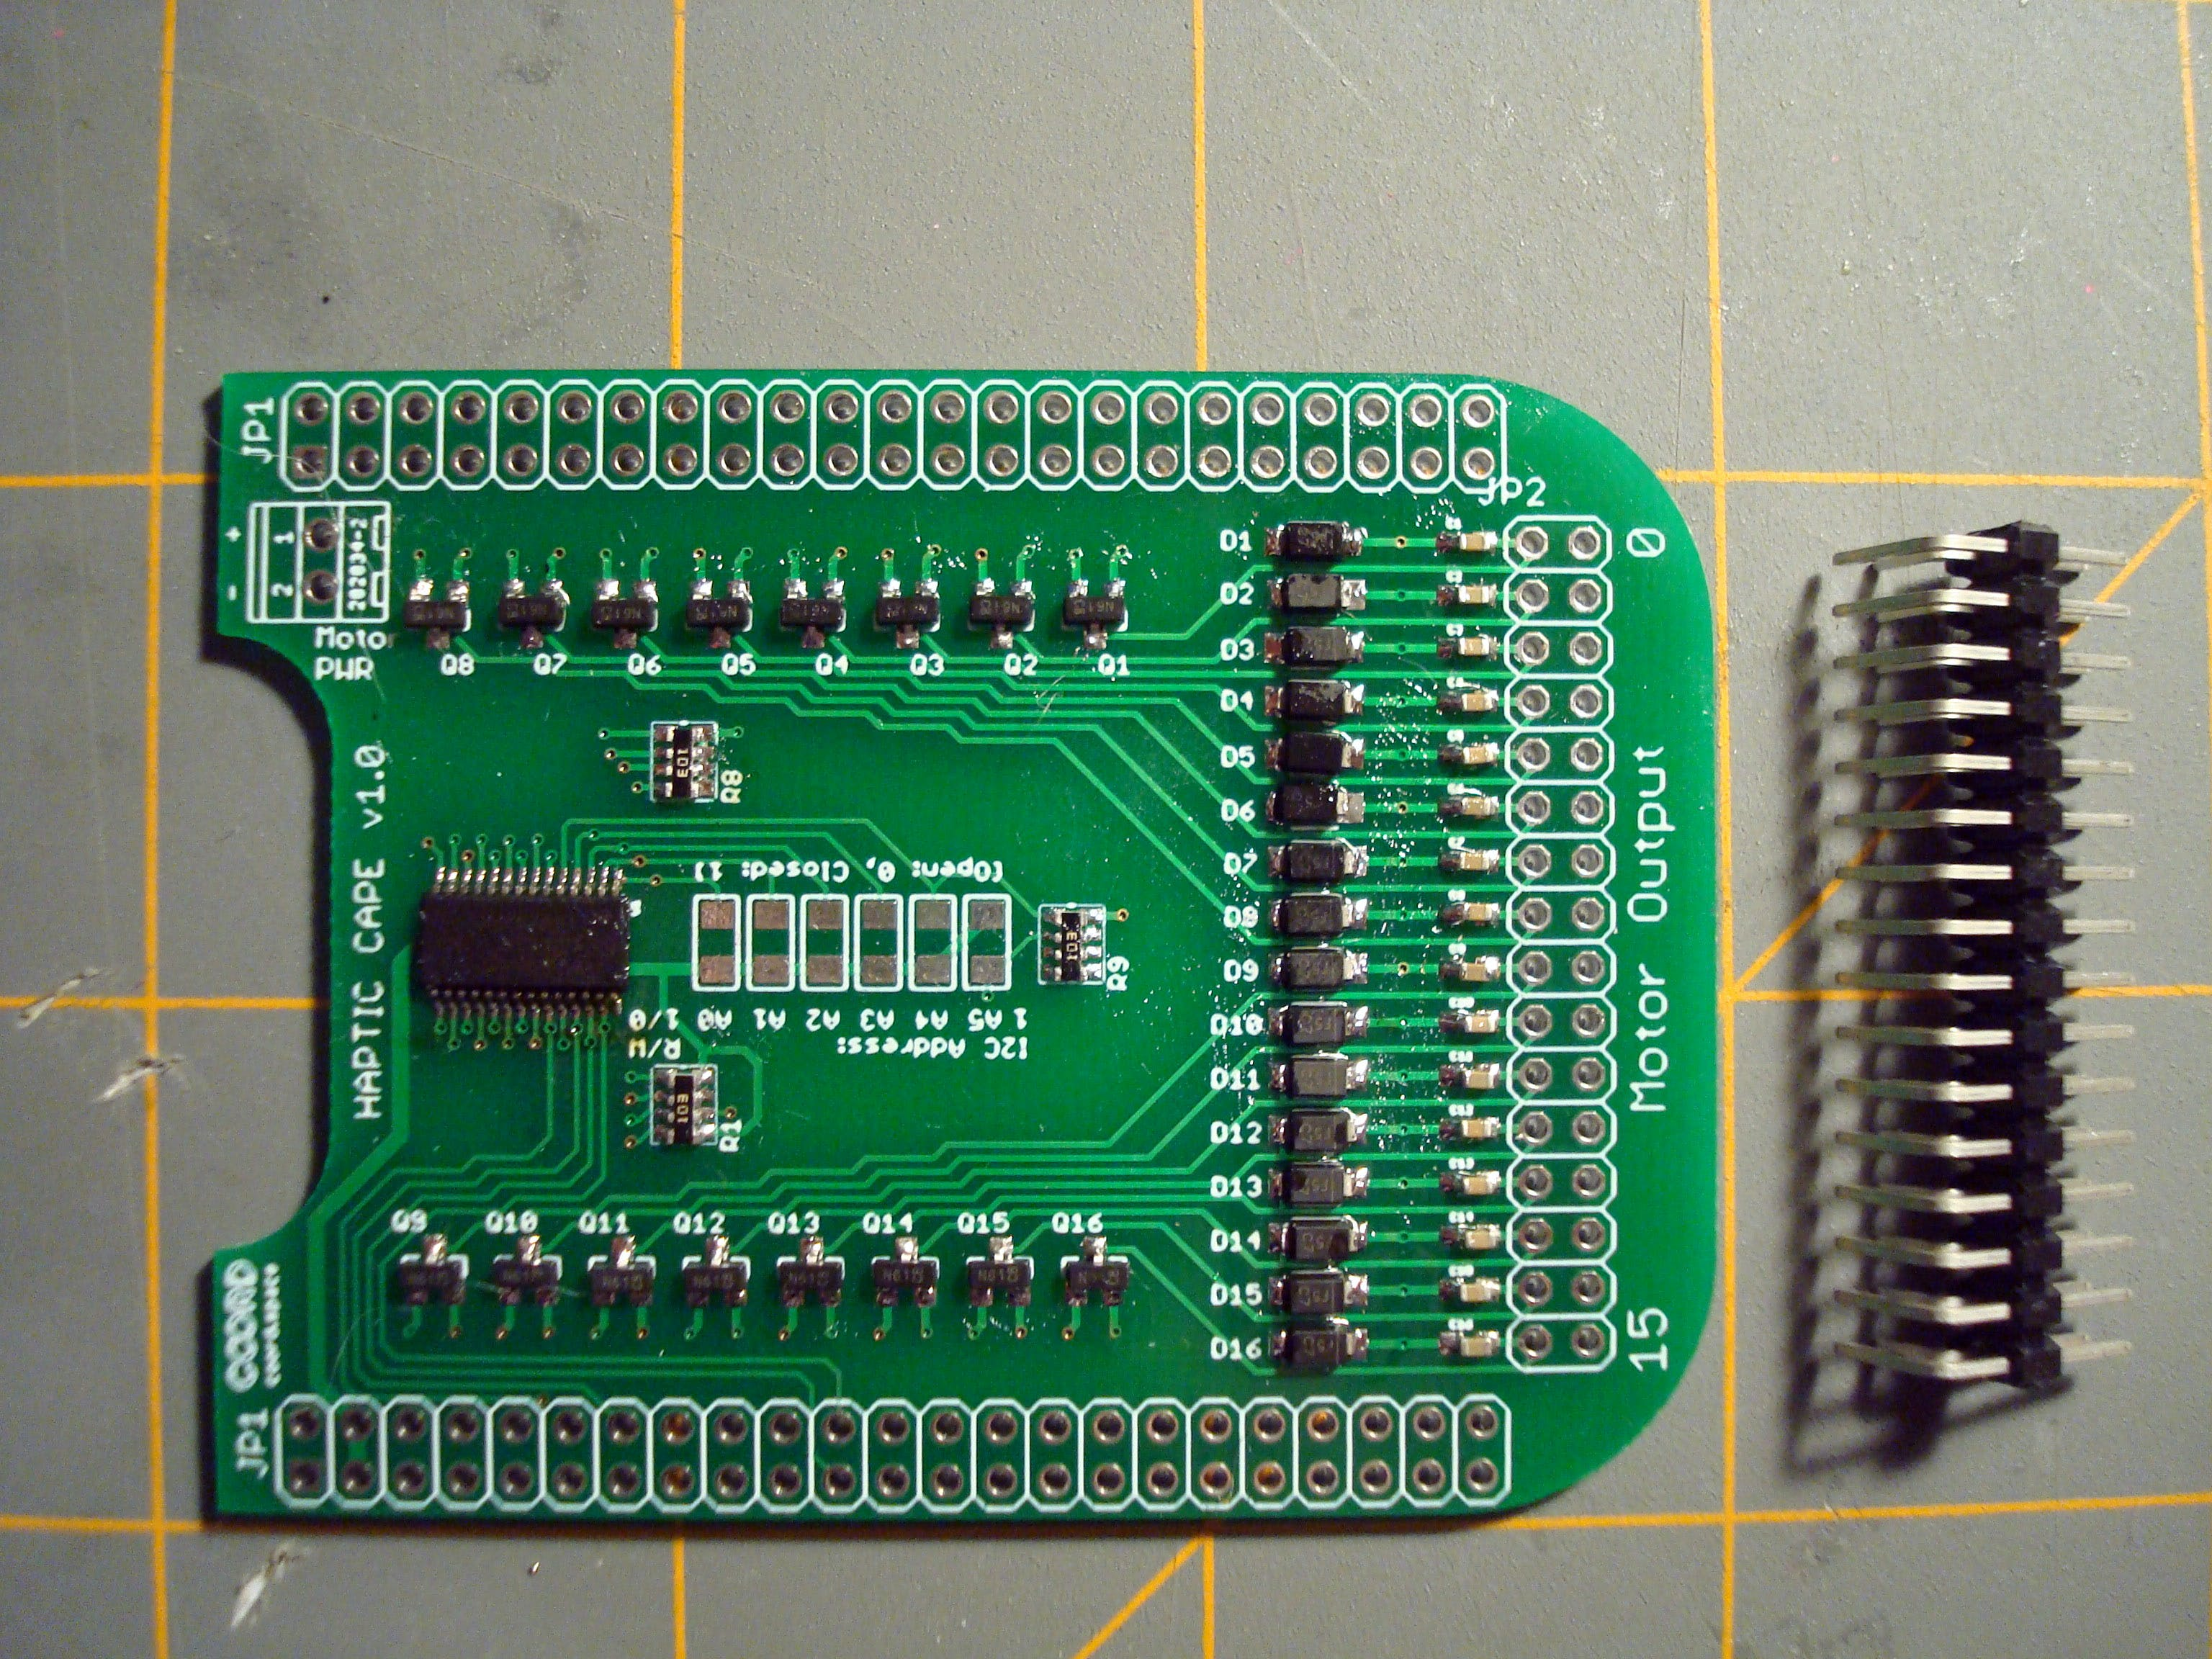 To attach our (max 16) tactors to the board, a 2x16 right-angle male header assembly is attached to the underside of the PCB.